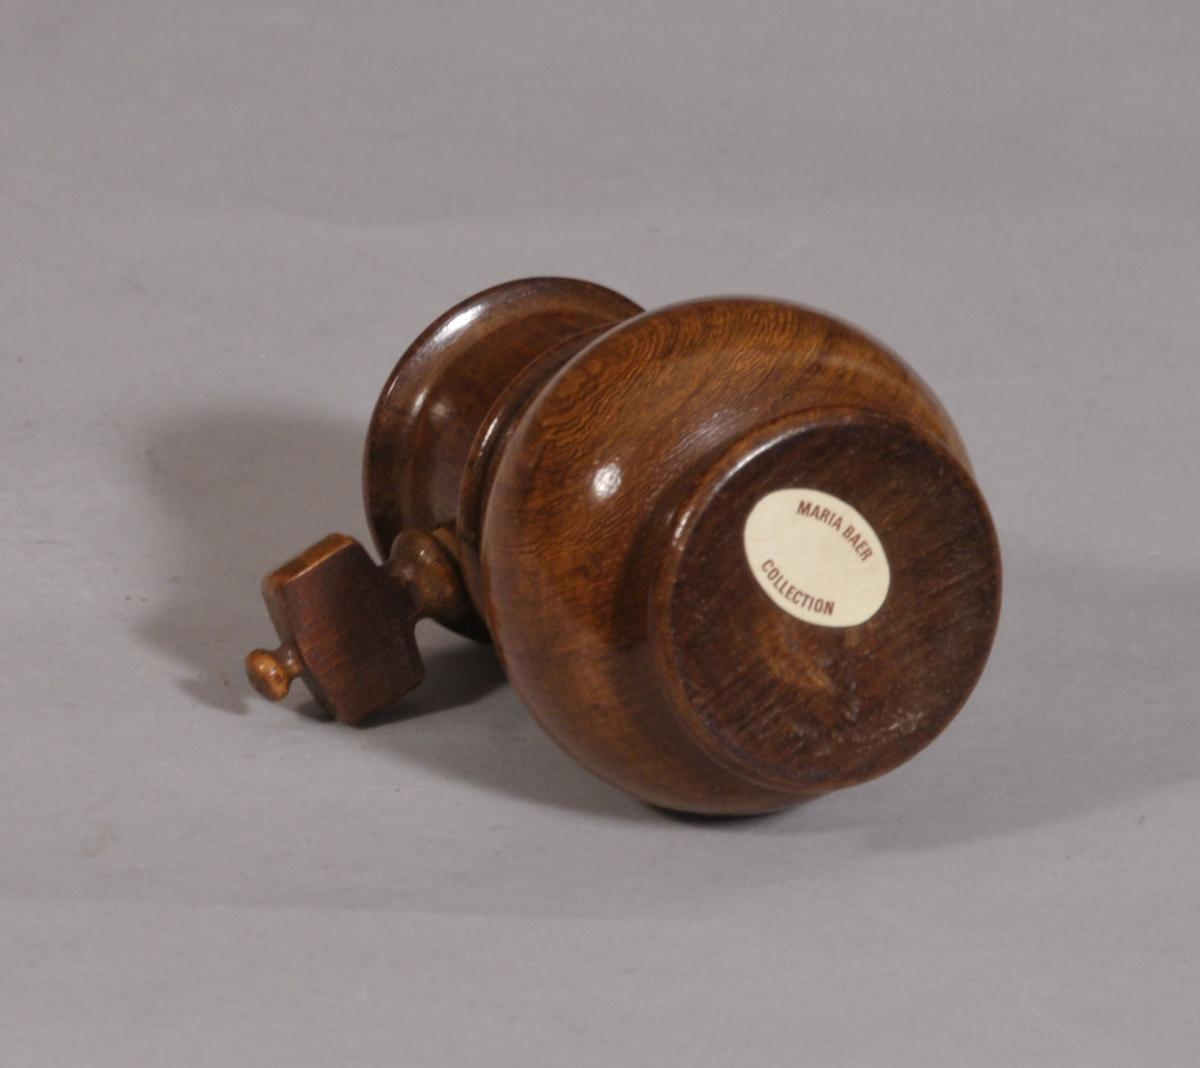 S/3265 Antique Treen 19th Century Fruitwood Spice Grinder